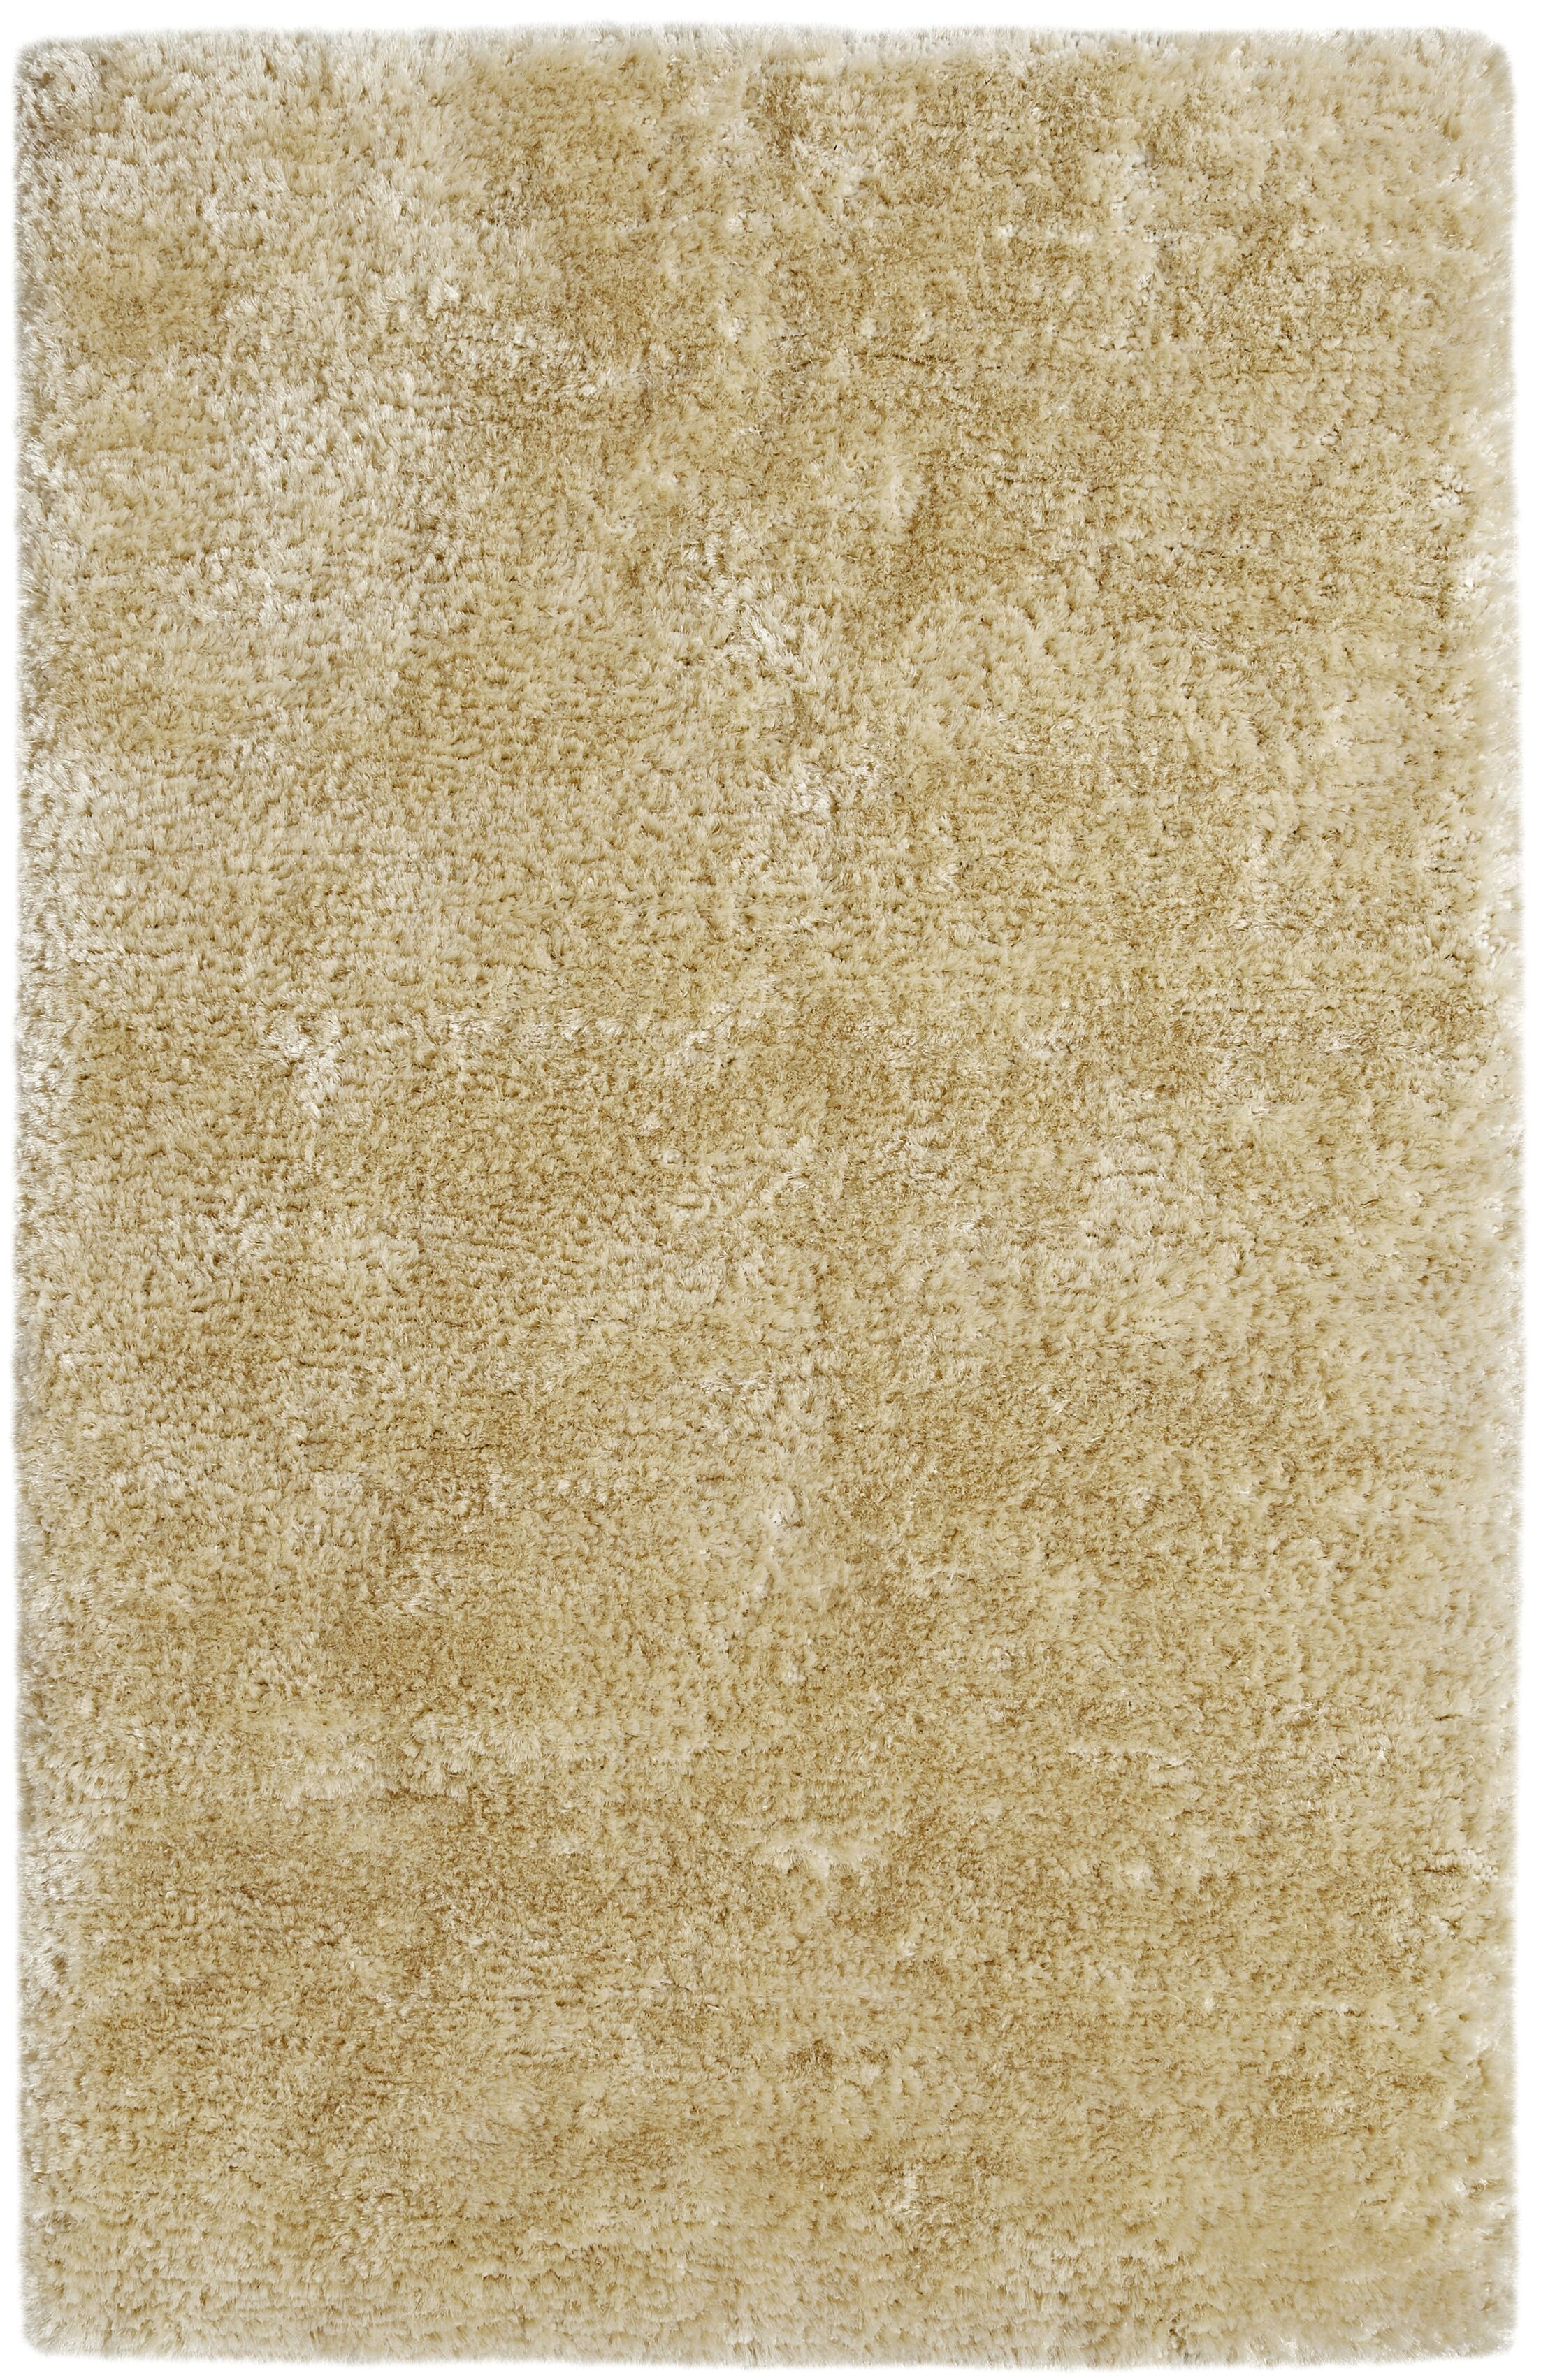 Saint Beige Area Rug Rug Size: Rectangle 10' x 14'